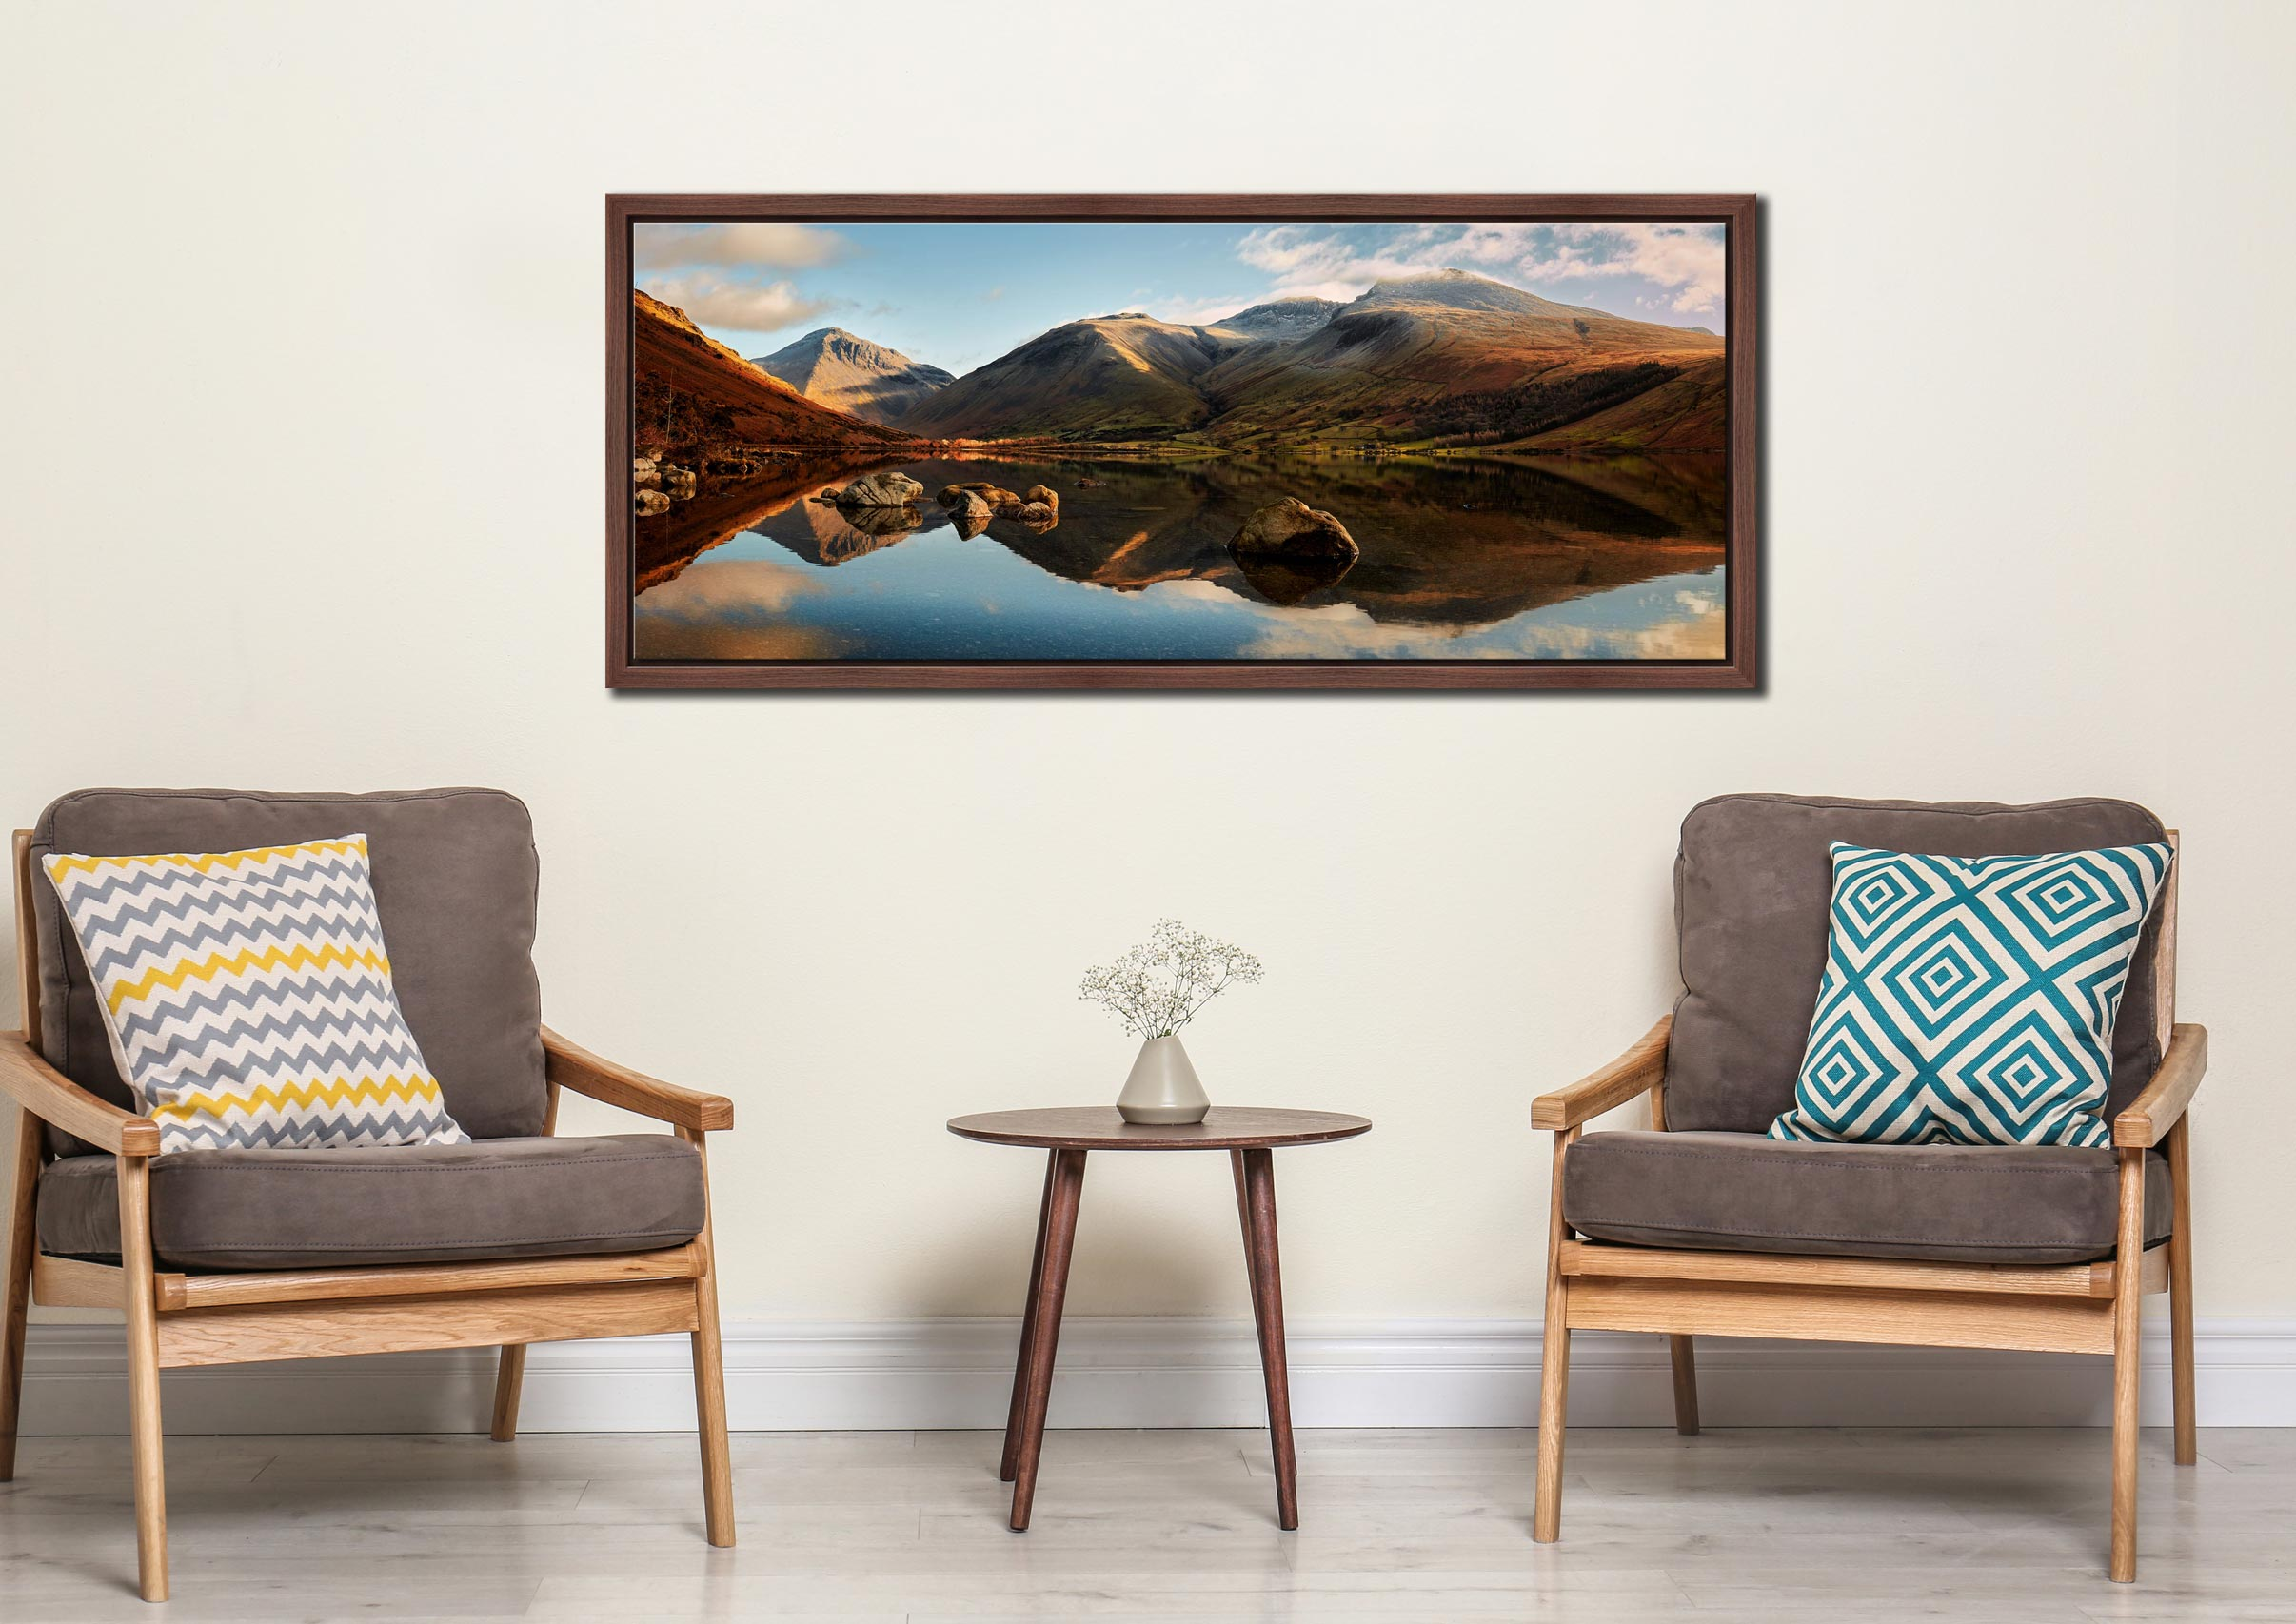 The first rays of light start to catch Wasdale head and Scafell Pike. Taken on a lovely calm winter's morning at Wast Water. Mountains left to right – Great Gable, Lingmell, Scafell Pike - Walnut floater frame with acrylic glazing on Wall